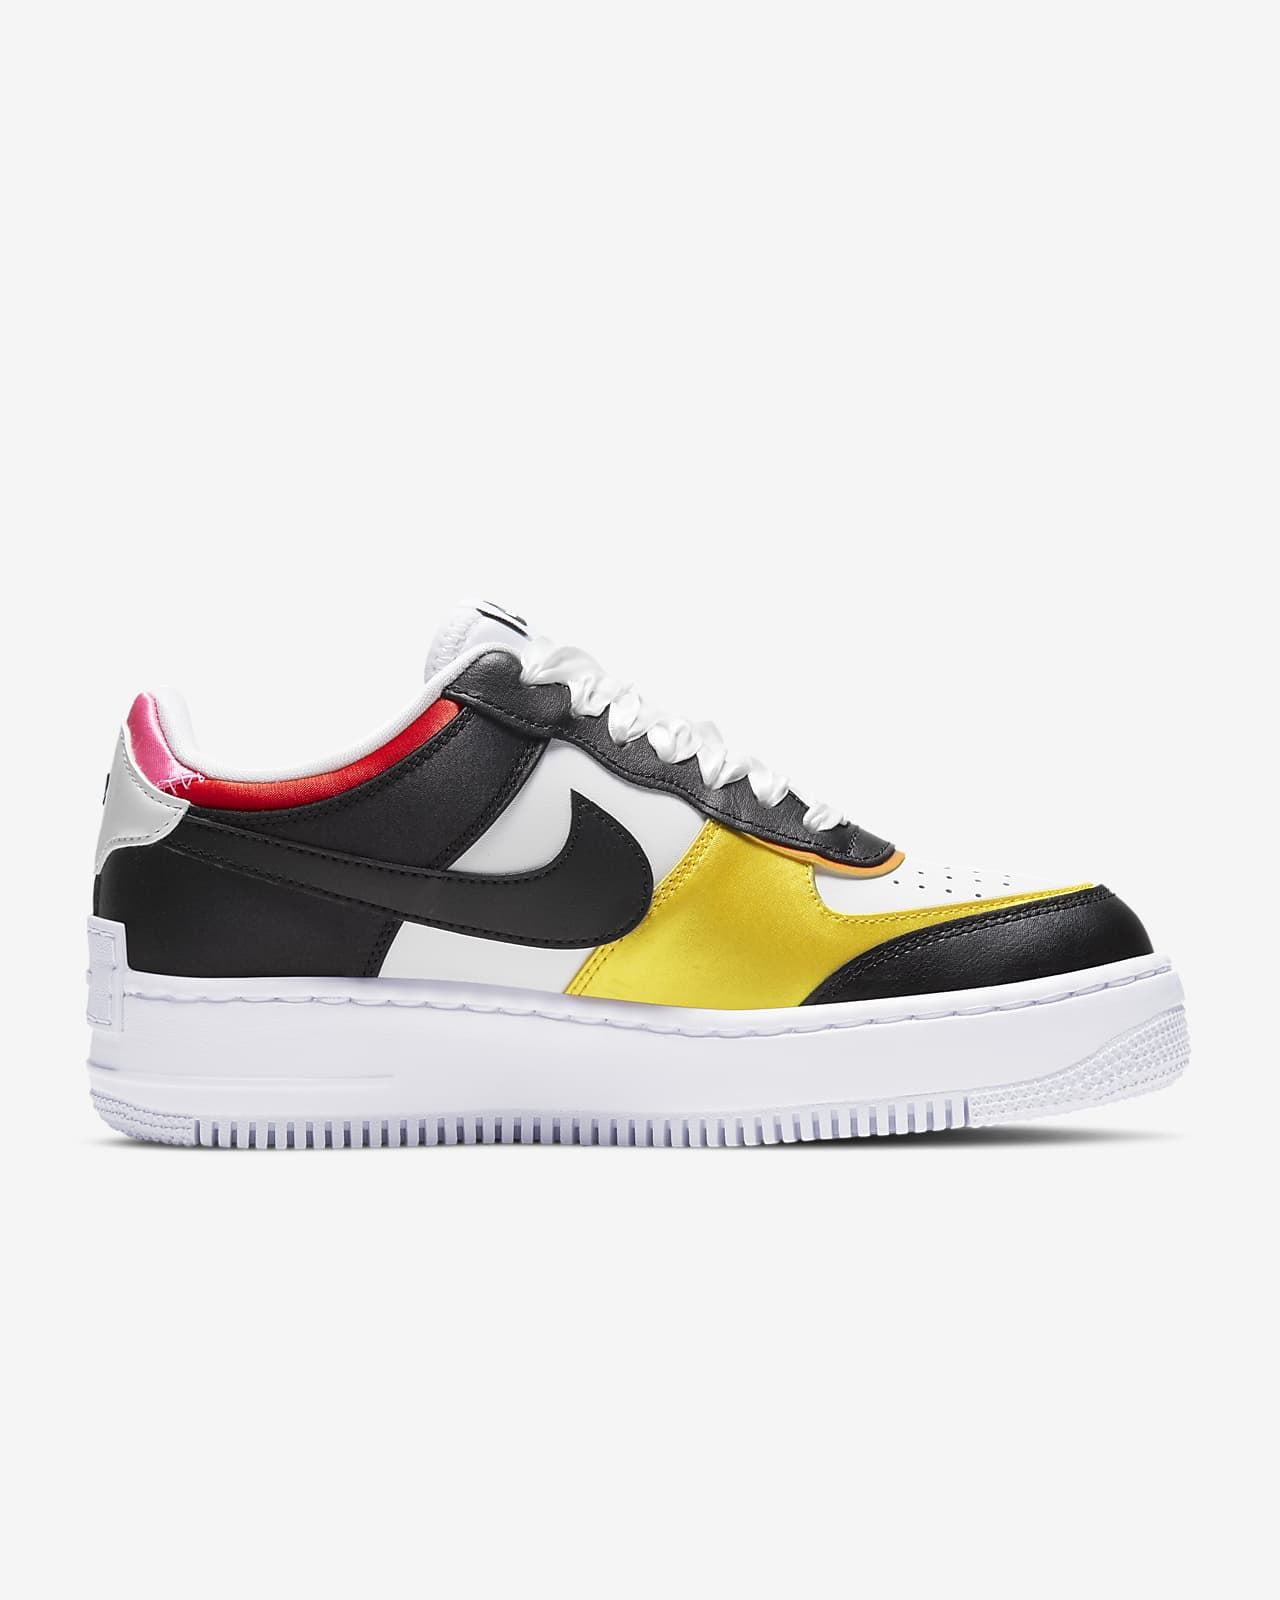 Nike Air Force 1 Shadow Women S Shoe Nike Lu Originally released in '82 under the name 'air force' and designed by one of nike's top designers, bruce kilgore, the sneaker was initially. nike air force 1 shadow women s shoe